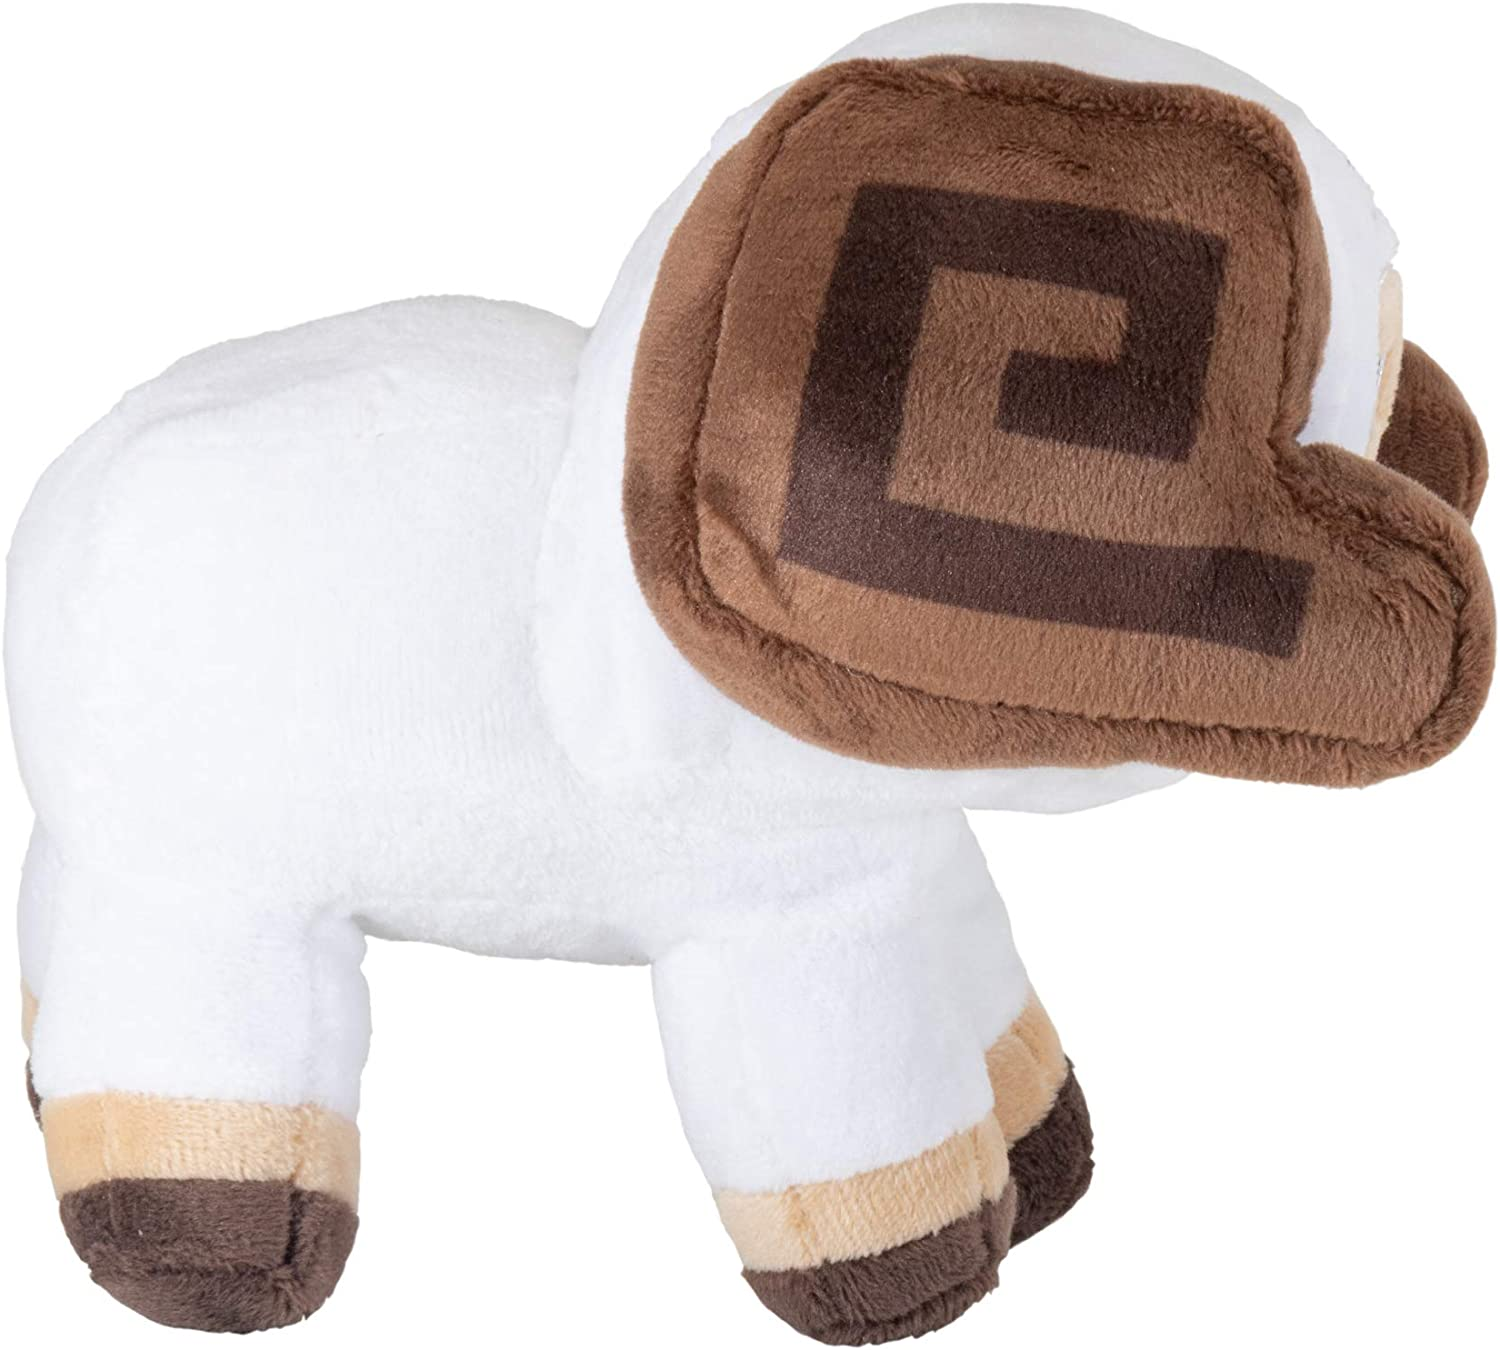 5.5 Tall JINX Minecraft Earth Happy Explorer Horned Sheep Plush Stuffed Toy Multi-Colored